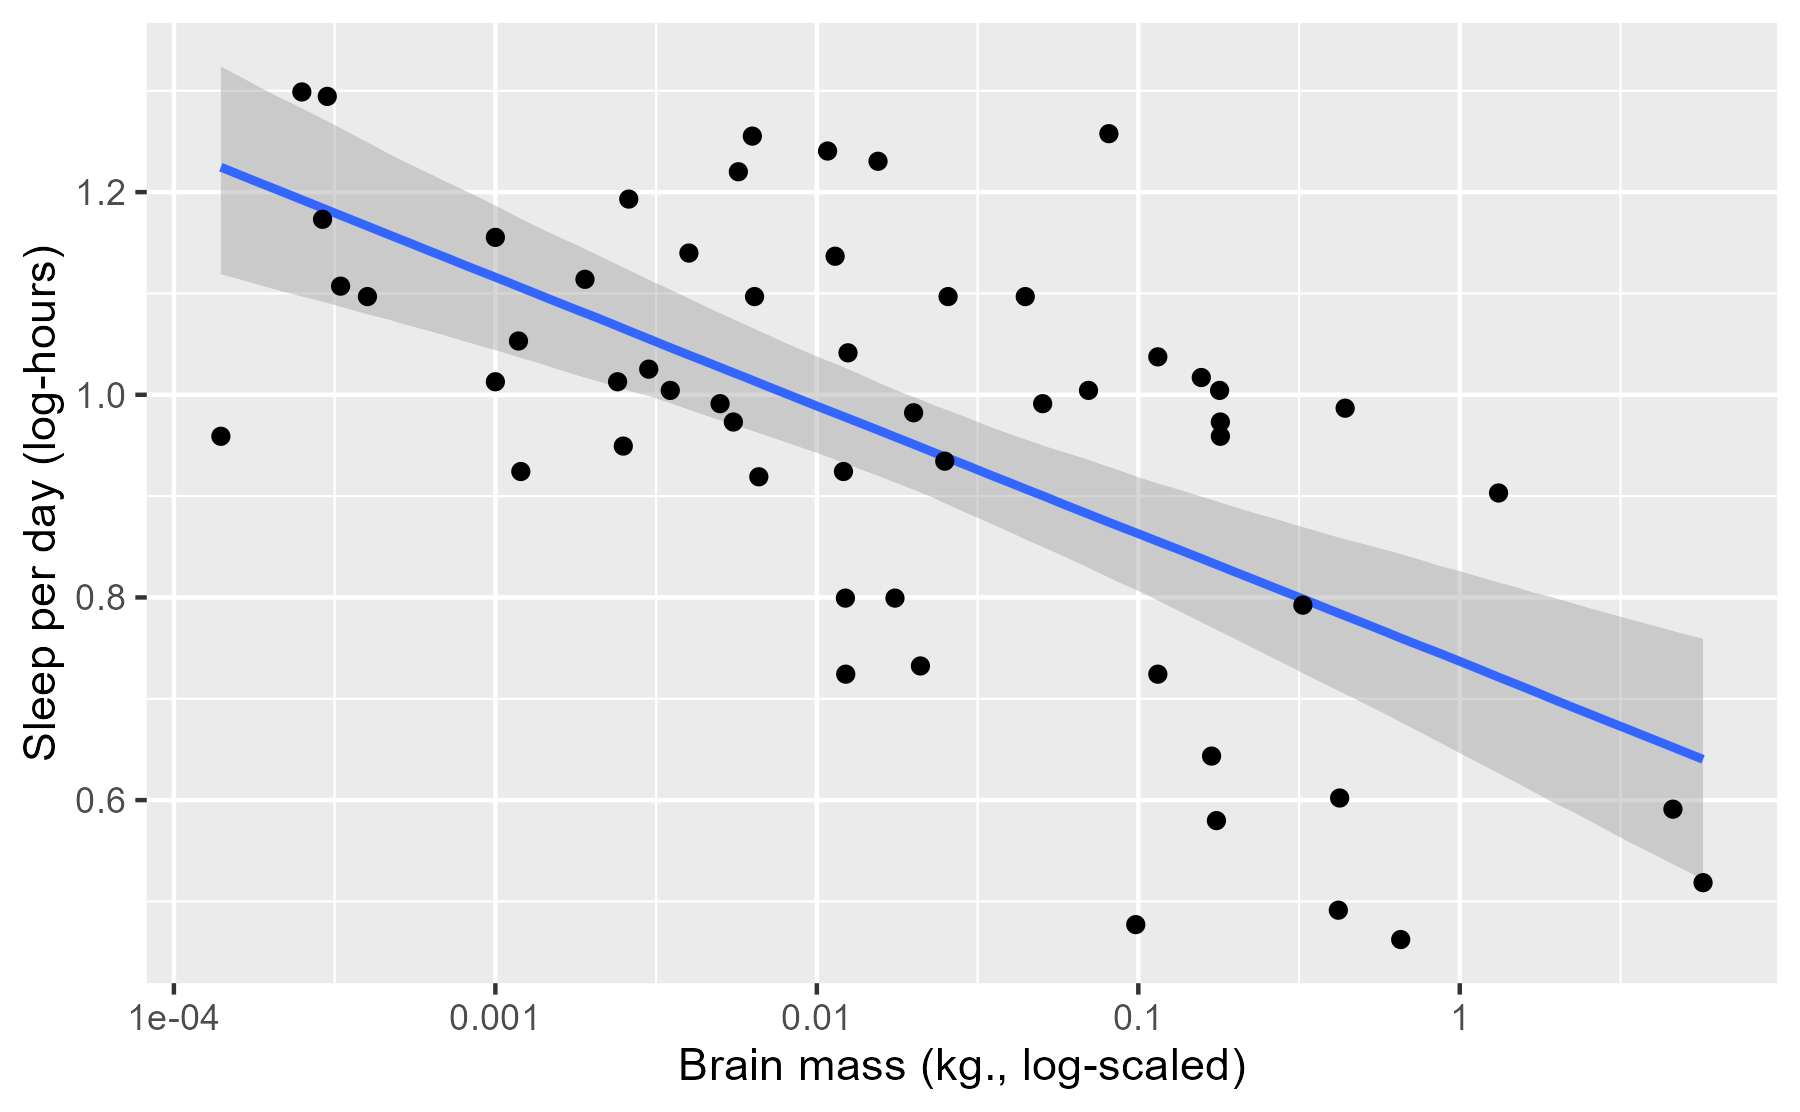 Brain mass by sleep hours, log-10 scale, plus the median and 95% uncertainty interval for the model-predicted mean.